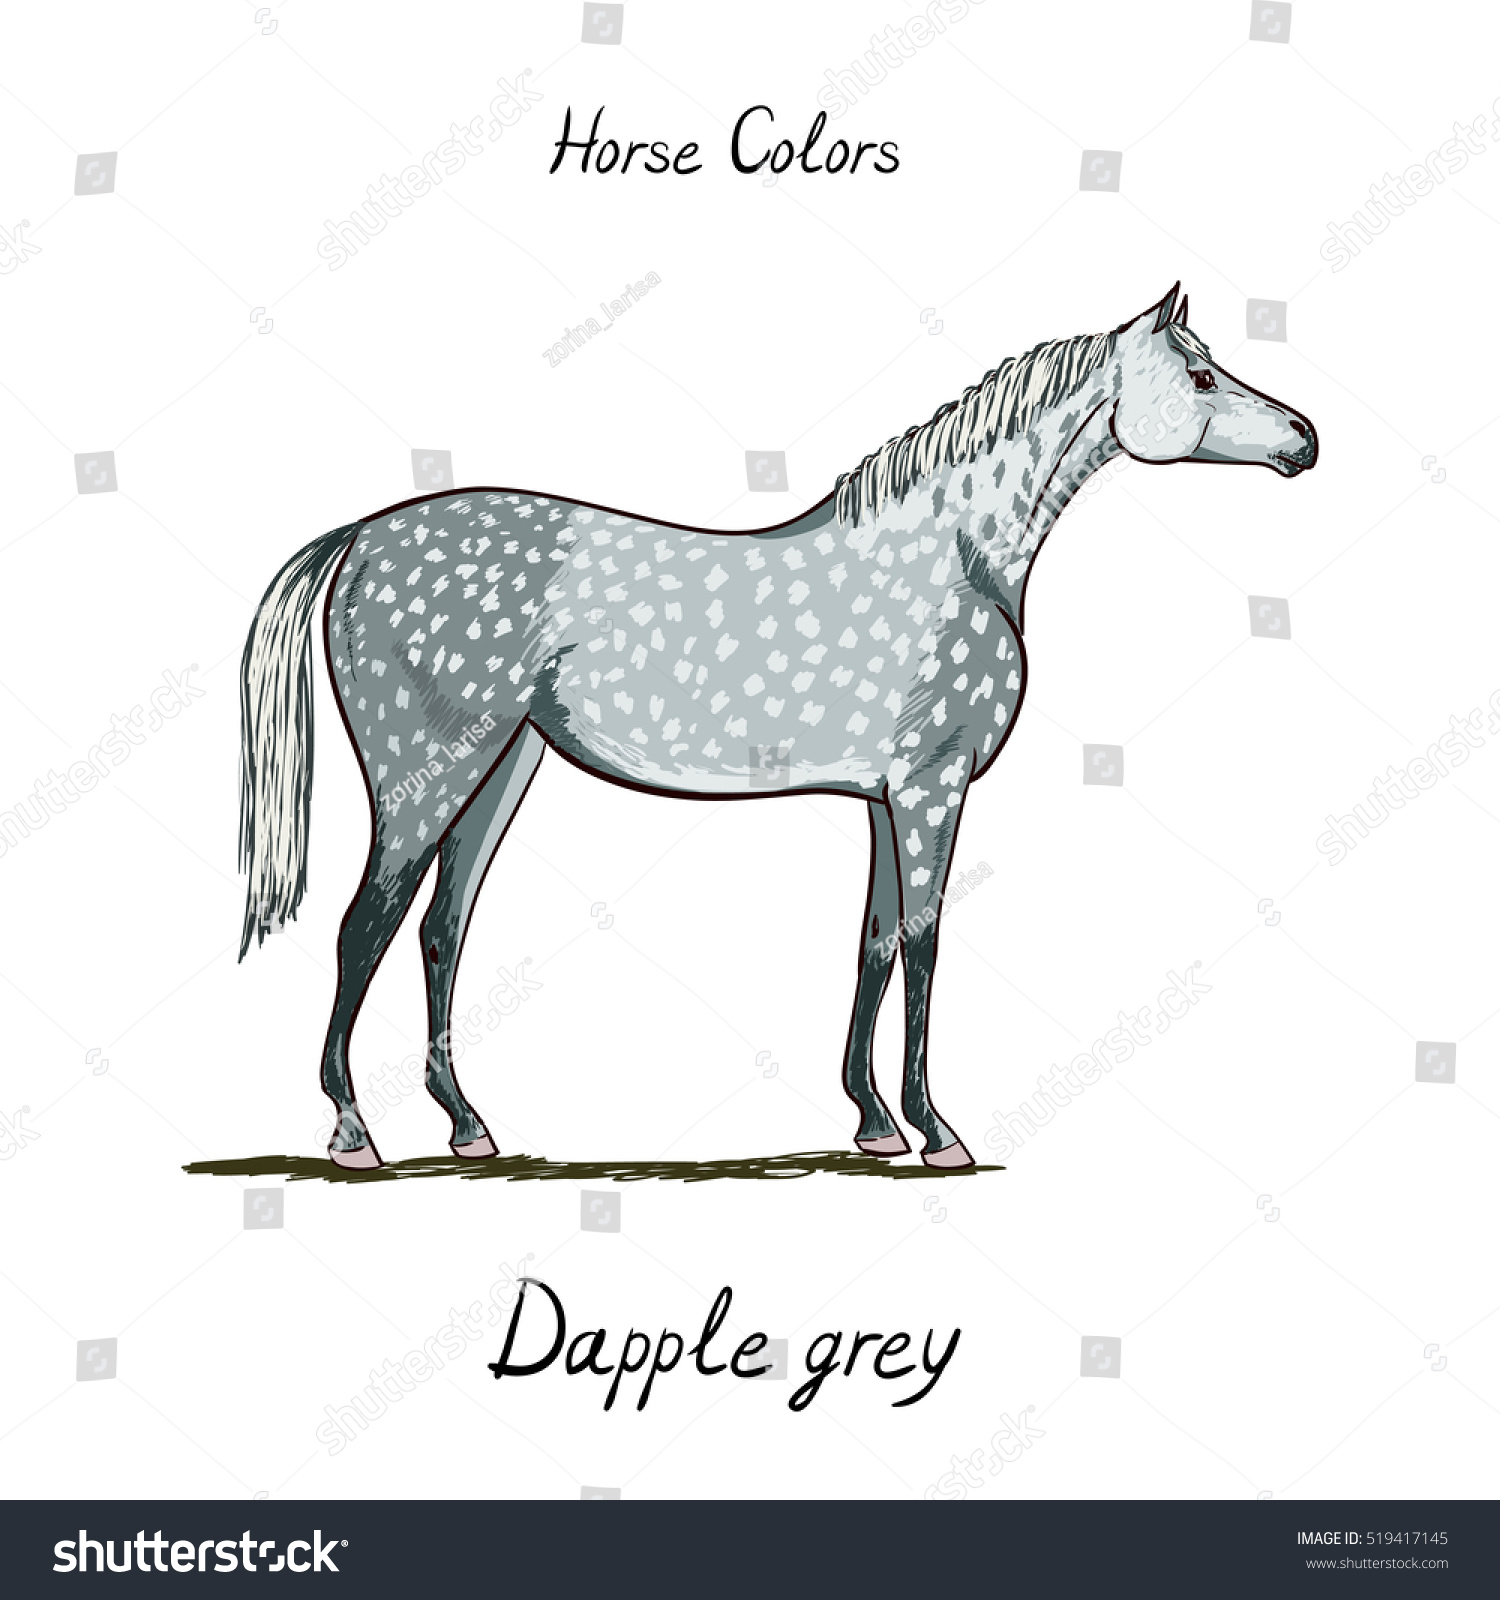 Horse color chart on white equine stock vector 519417145 horse color chart on white equine dapple grey coat color with text equestrian scheme nvjuhfo Gallery